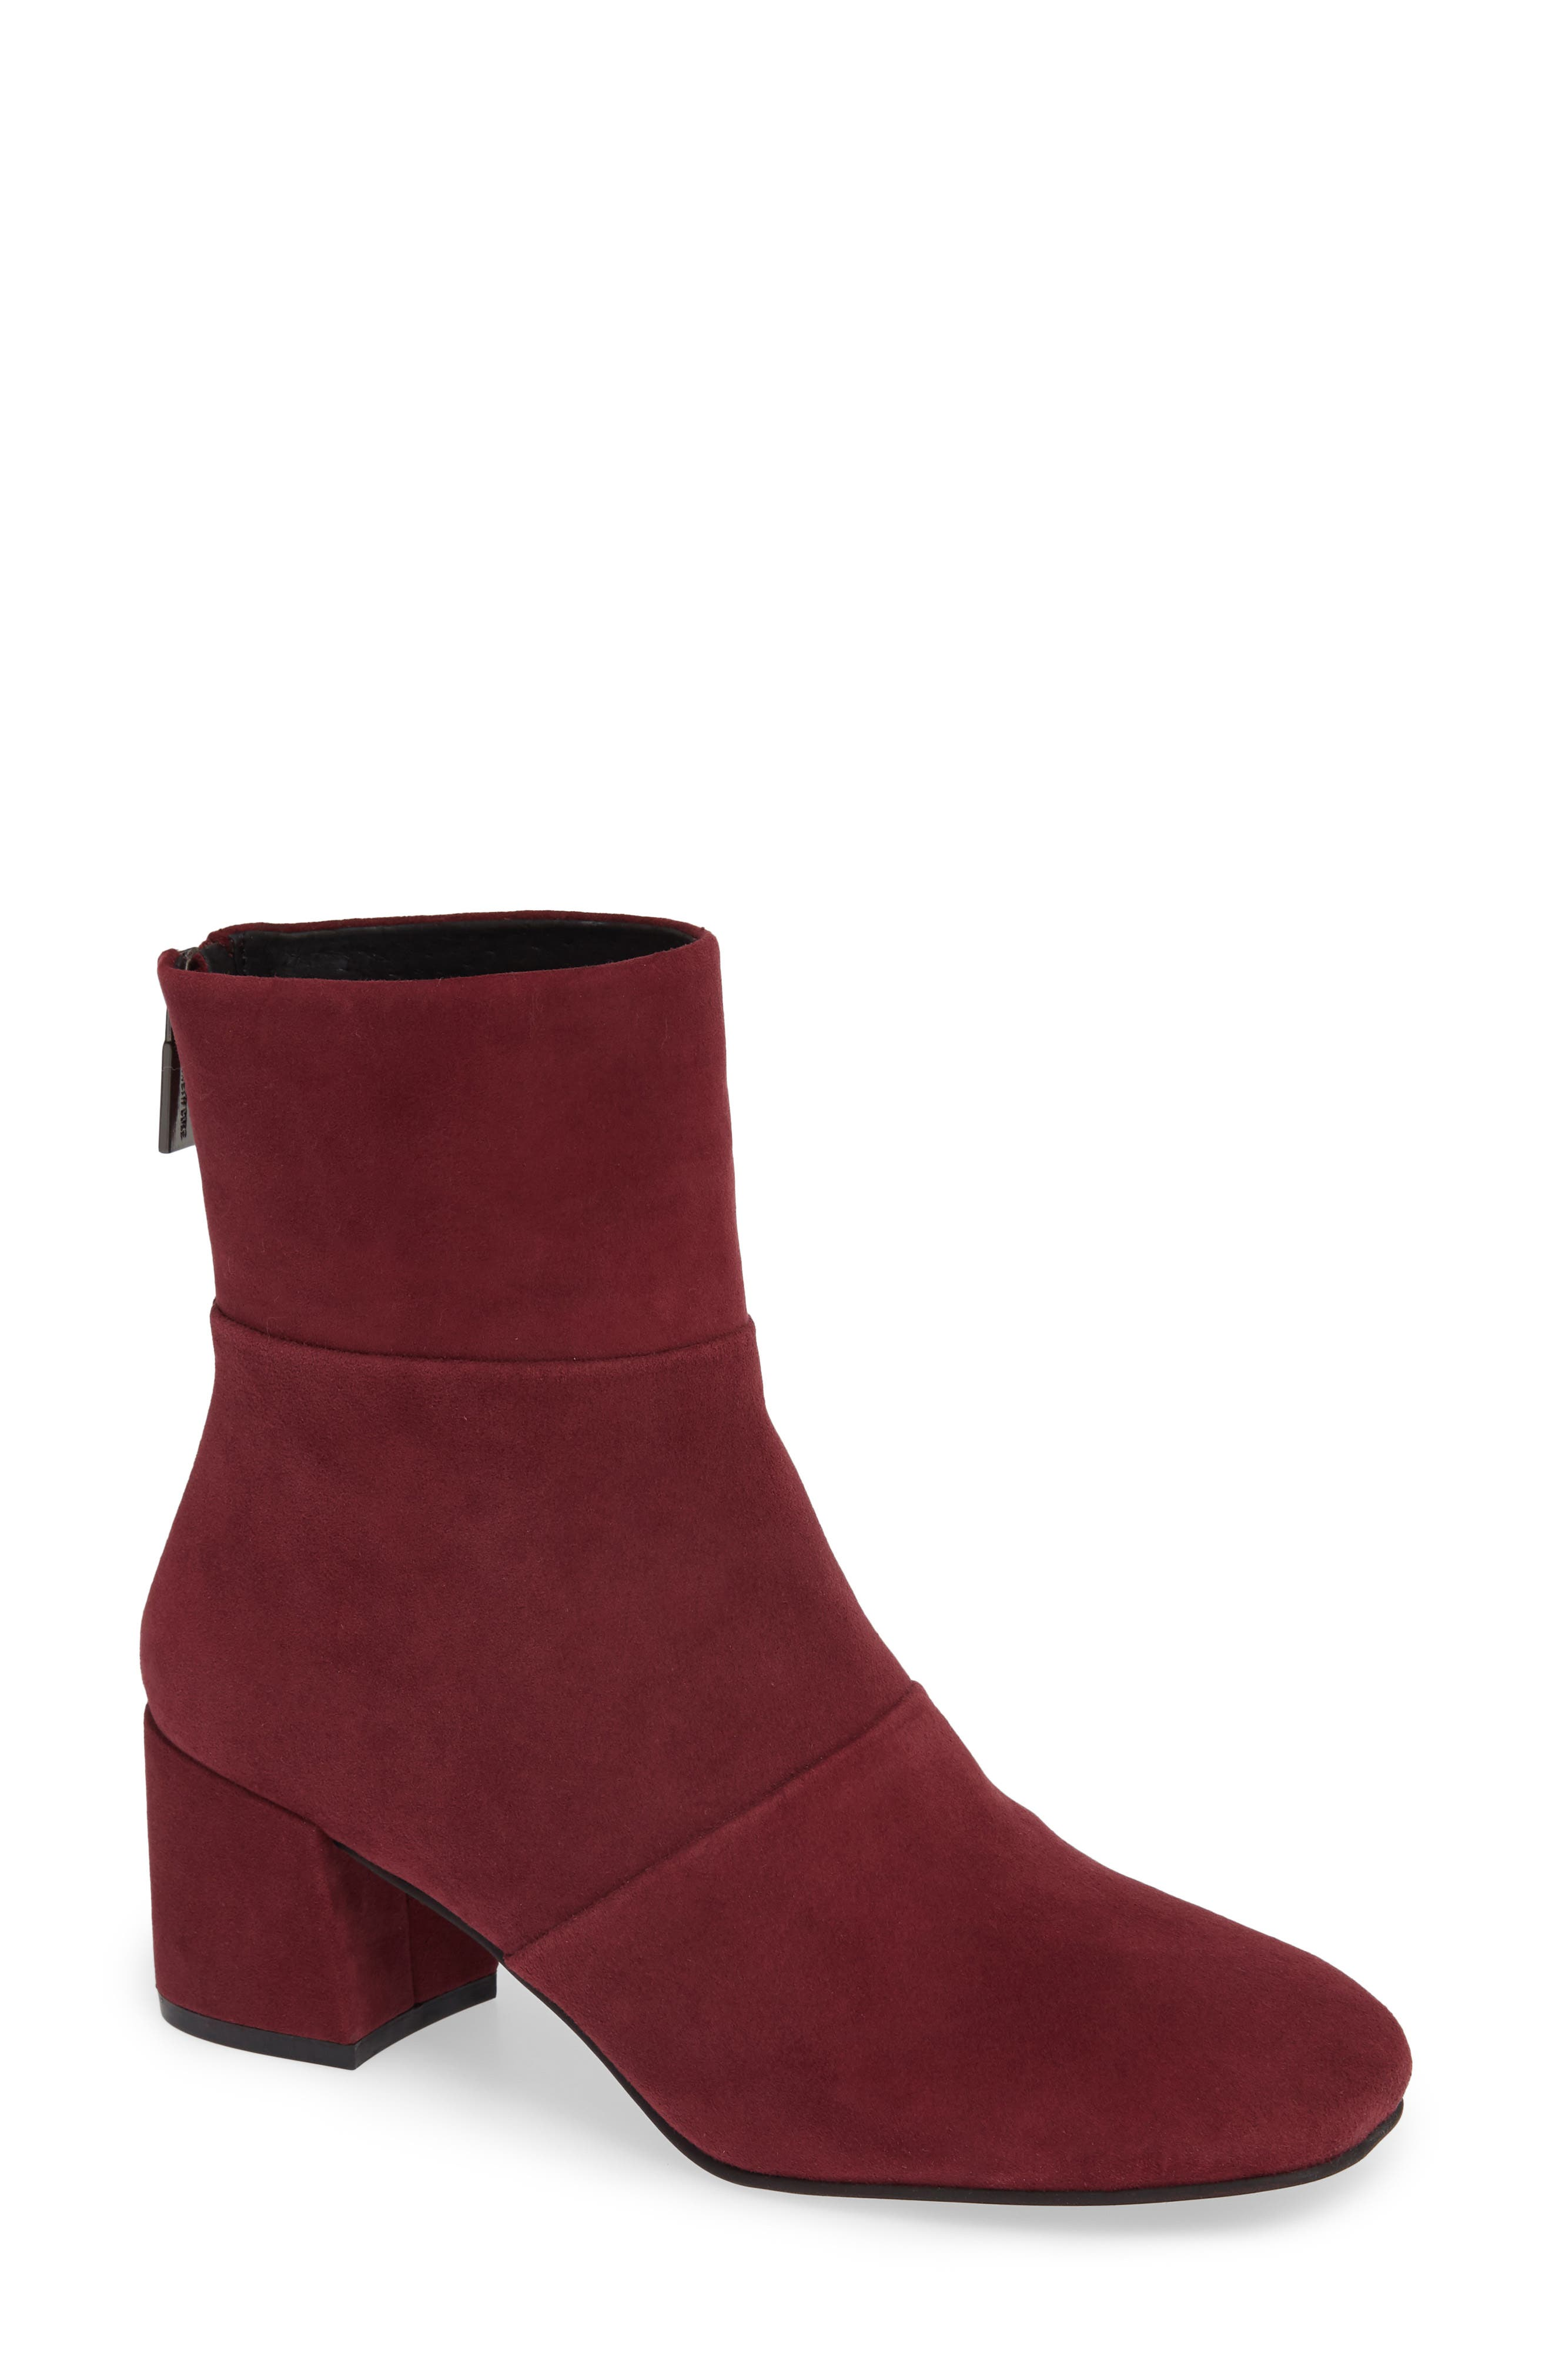 Eryc Bootie,                             Main thumbnail 1, color,                             WINE SUEDE